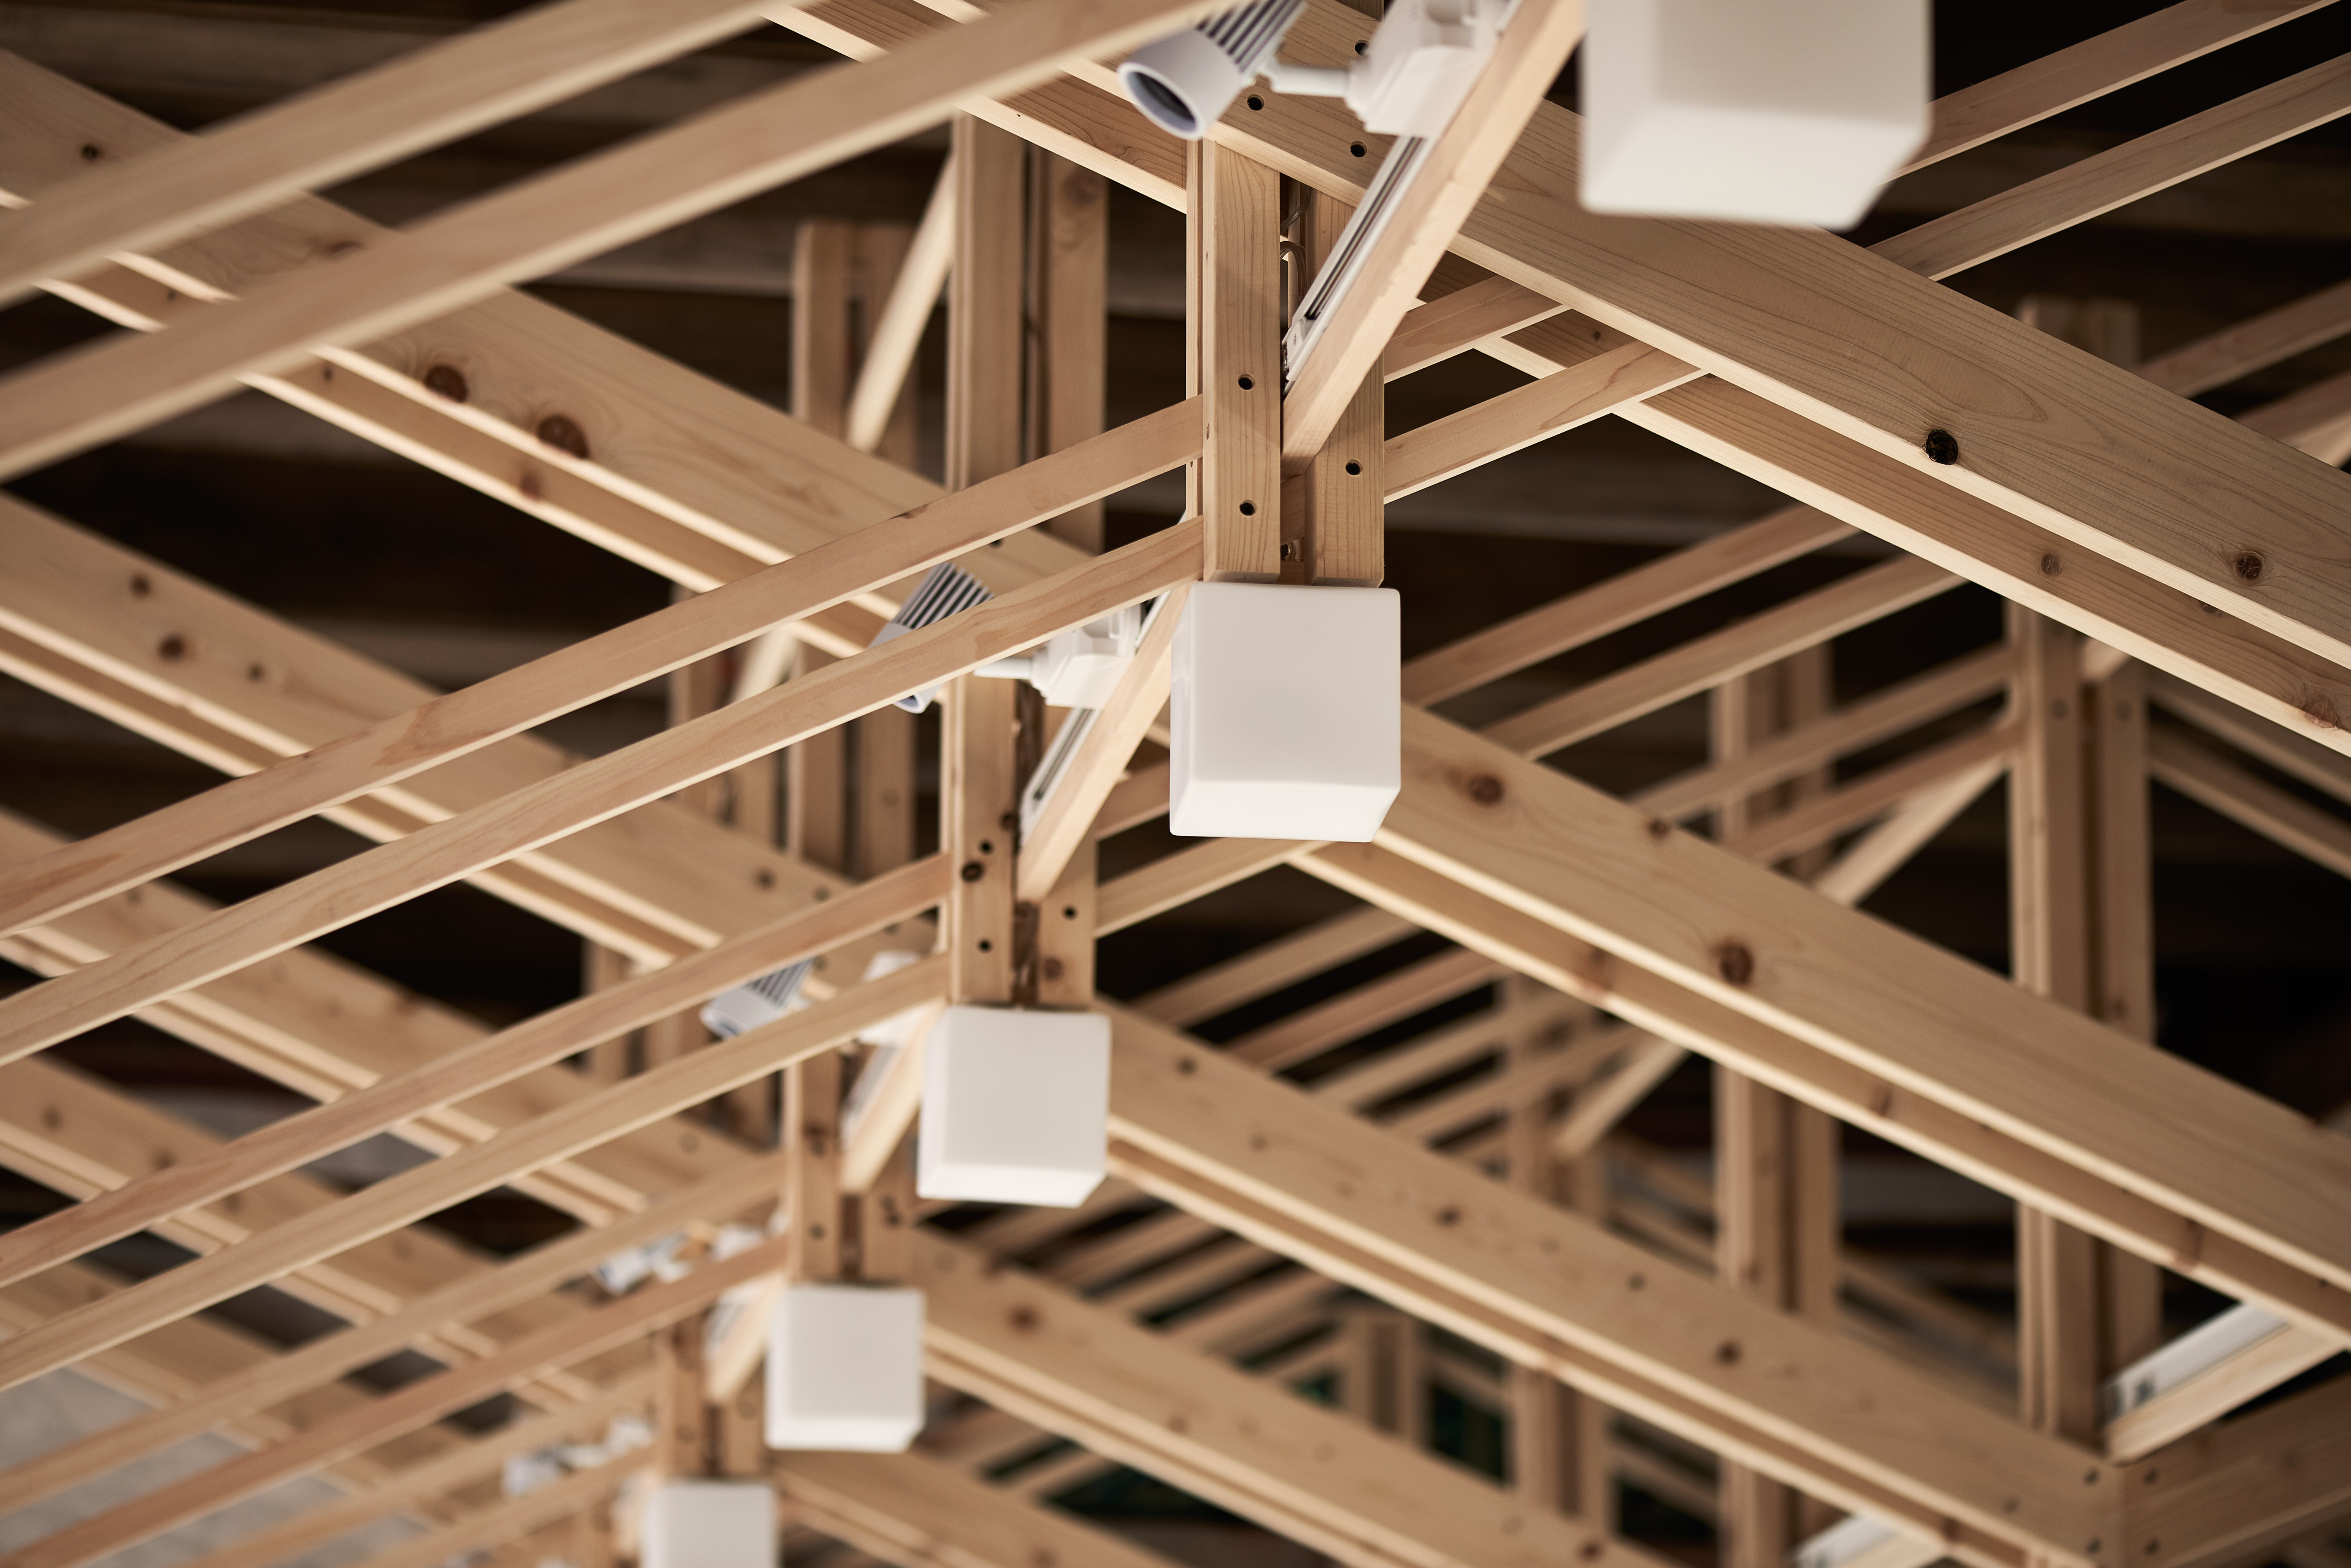 The Inverted Trusses